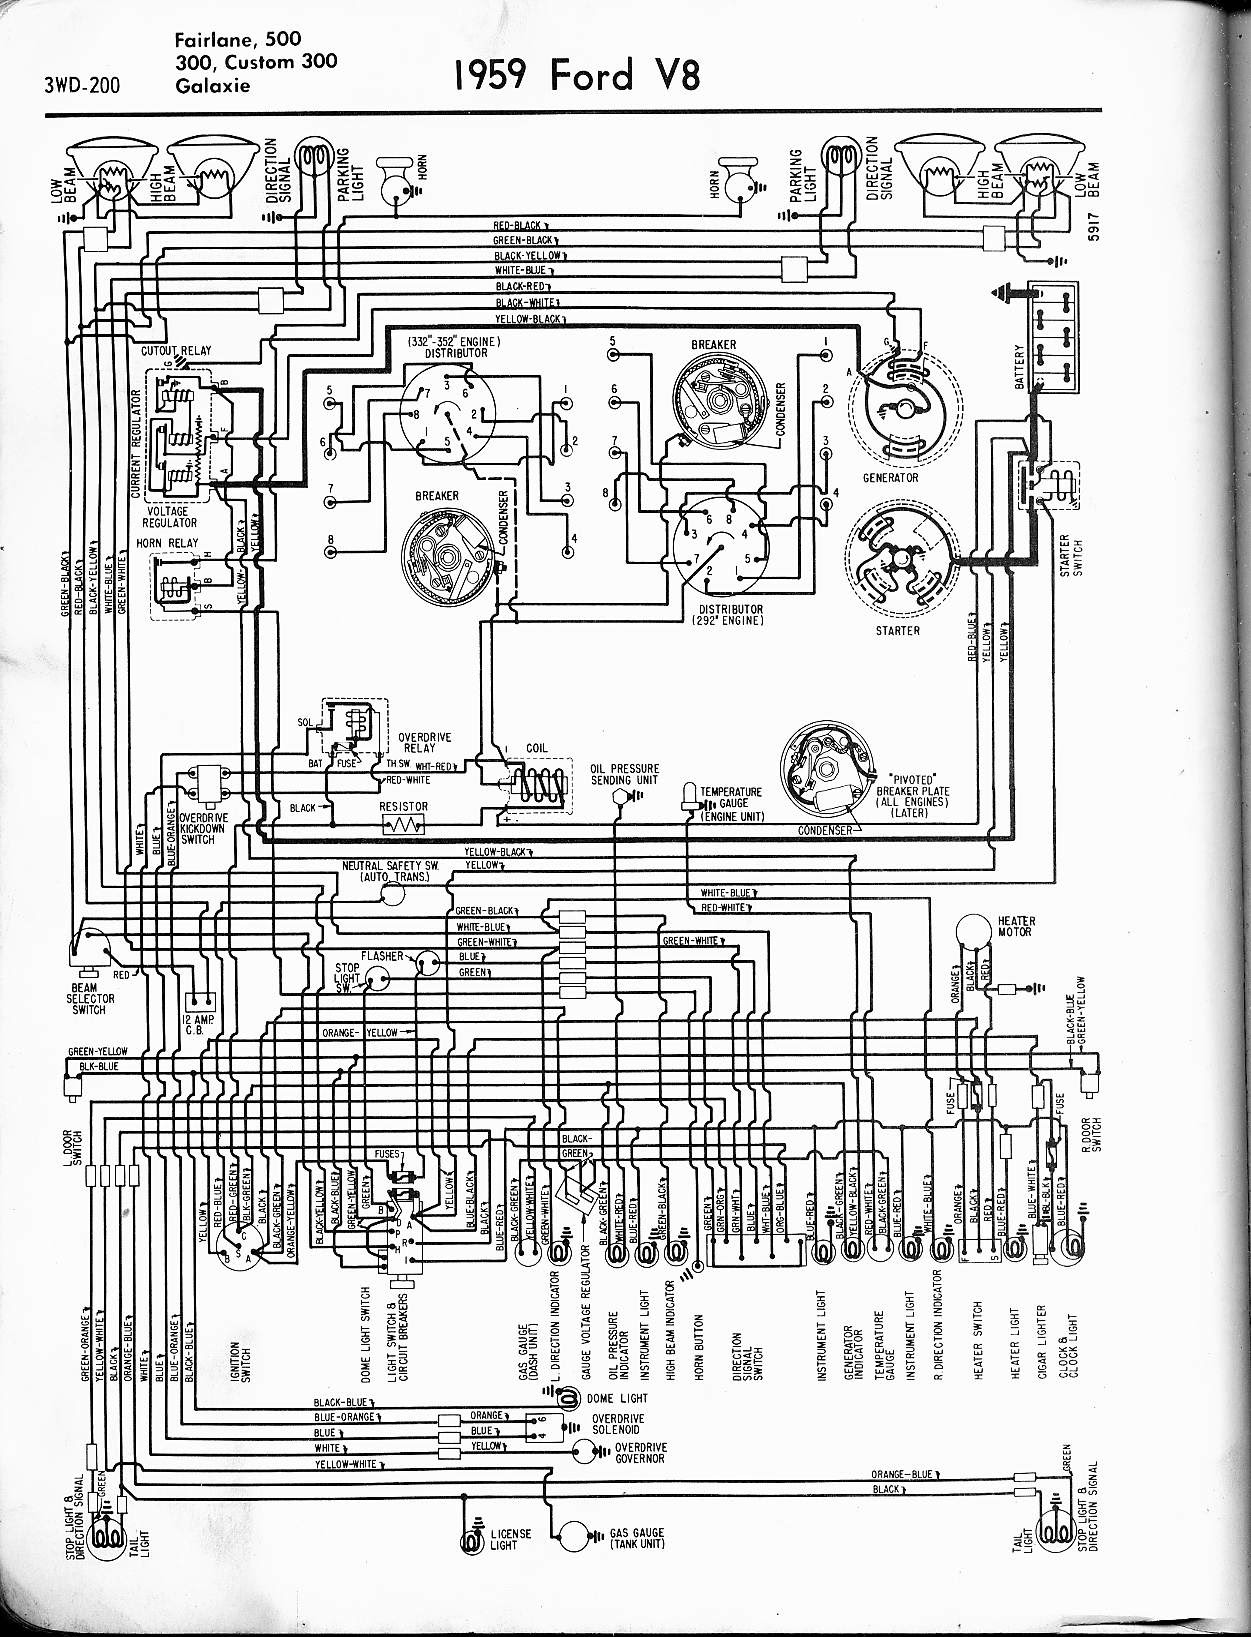 1957 Ford Signal Light Wiring Schematic Wiring Diagram Frame Frame Cfcarsnoleggio It